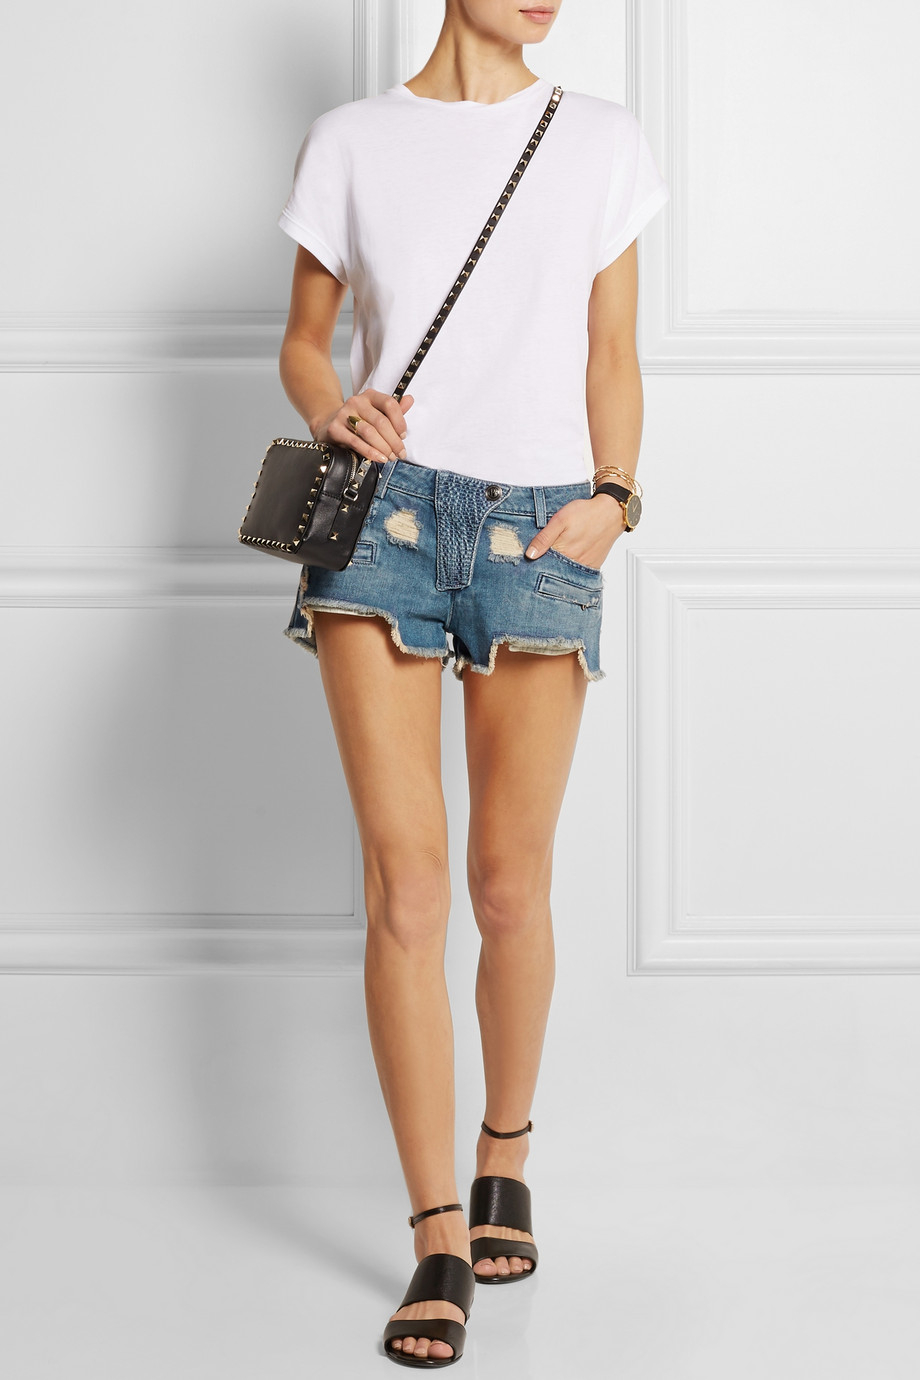 Balmain Distressed Low-Rise Denim Shorts in Blue | Lyst